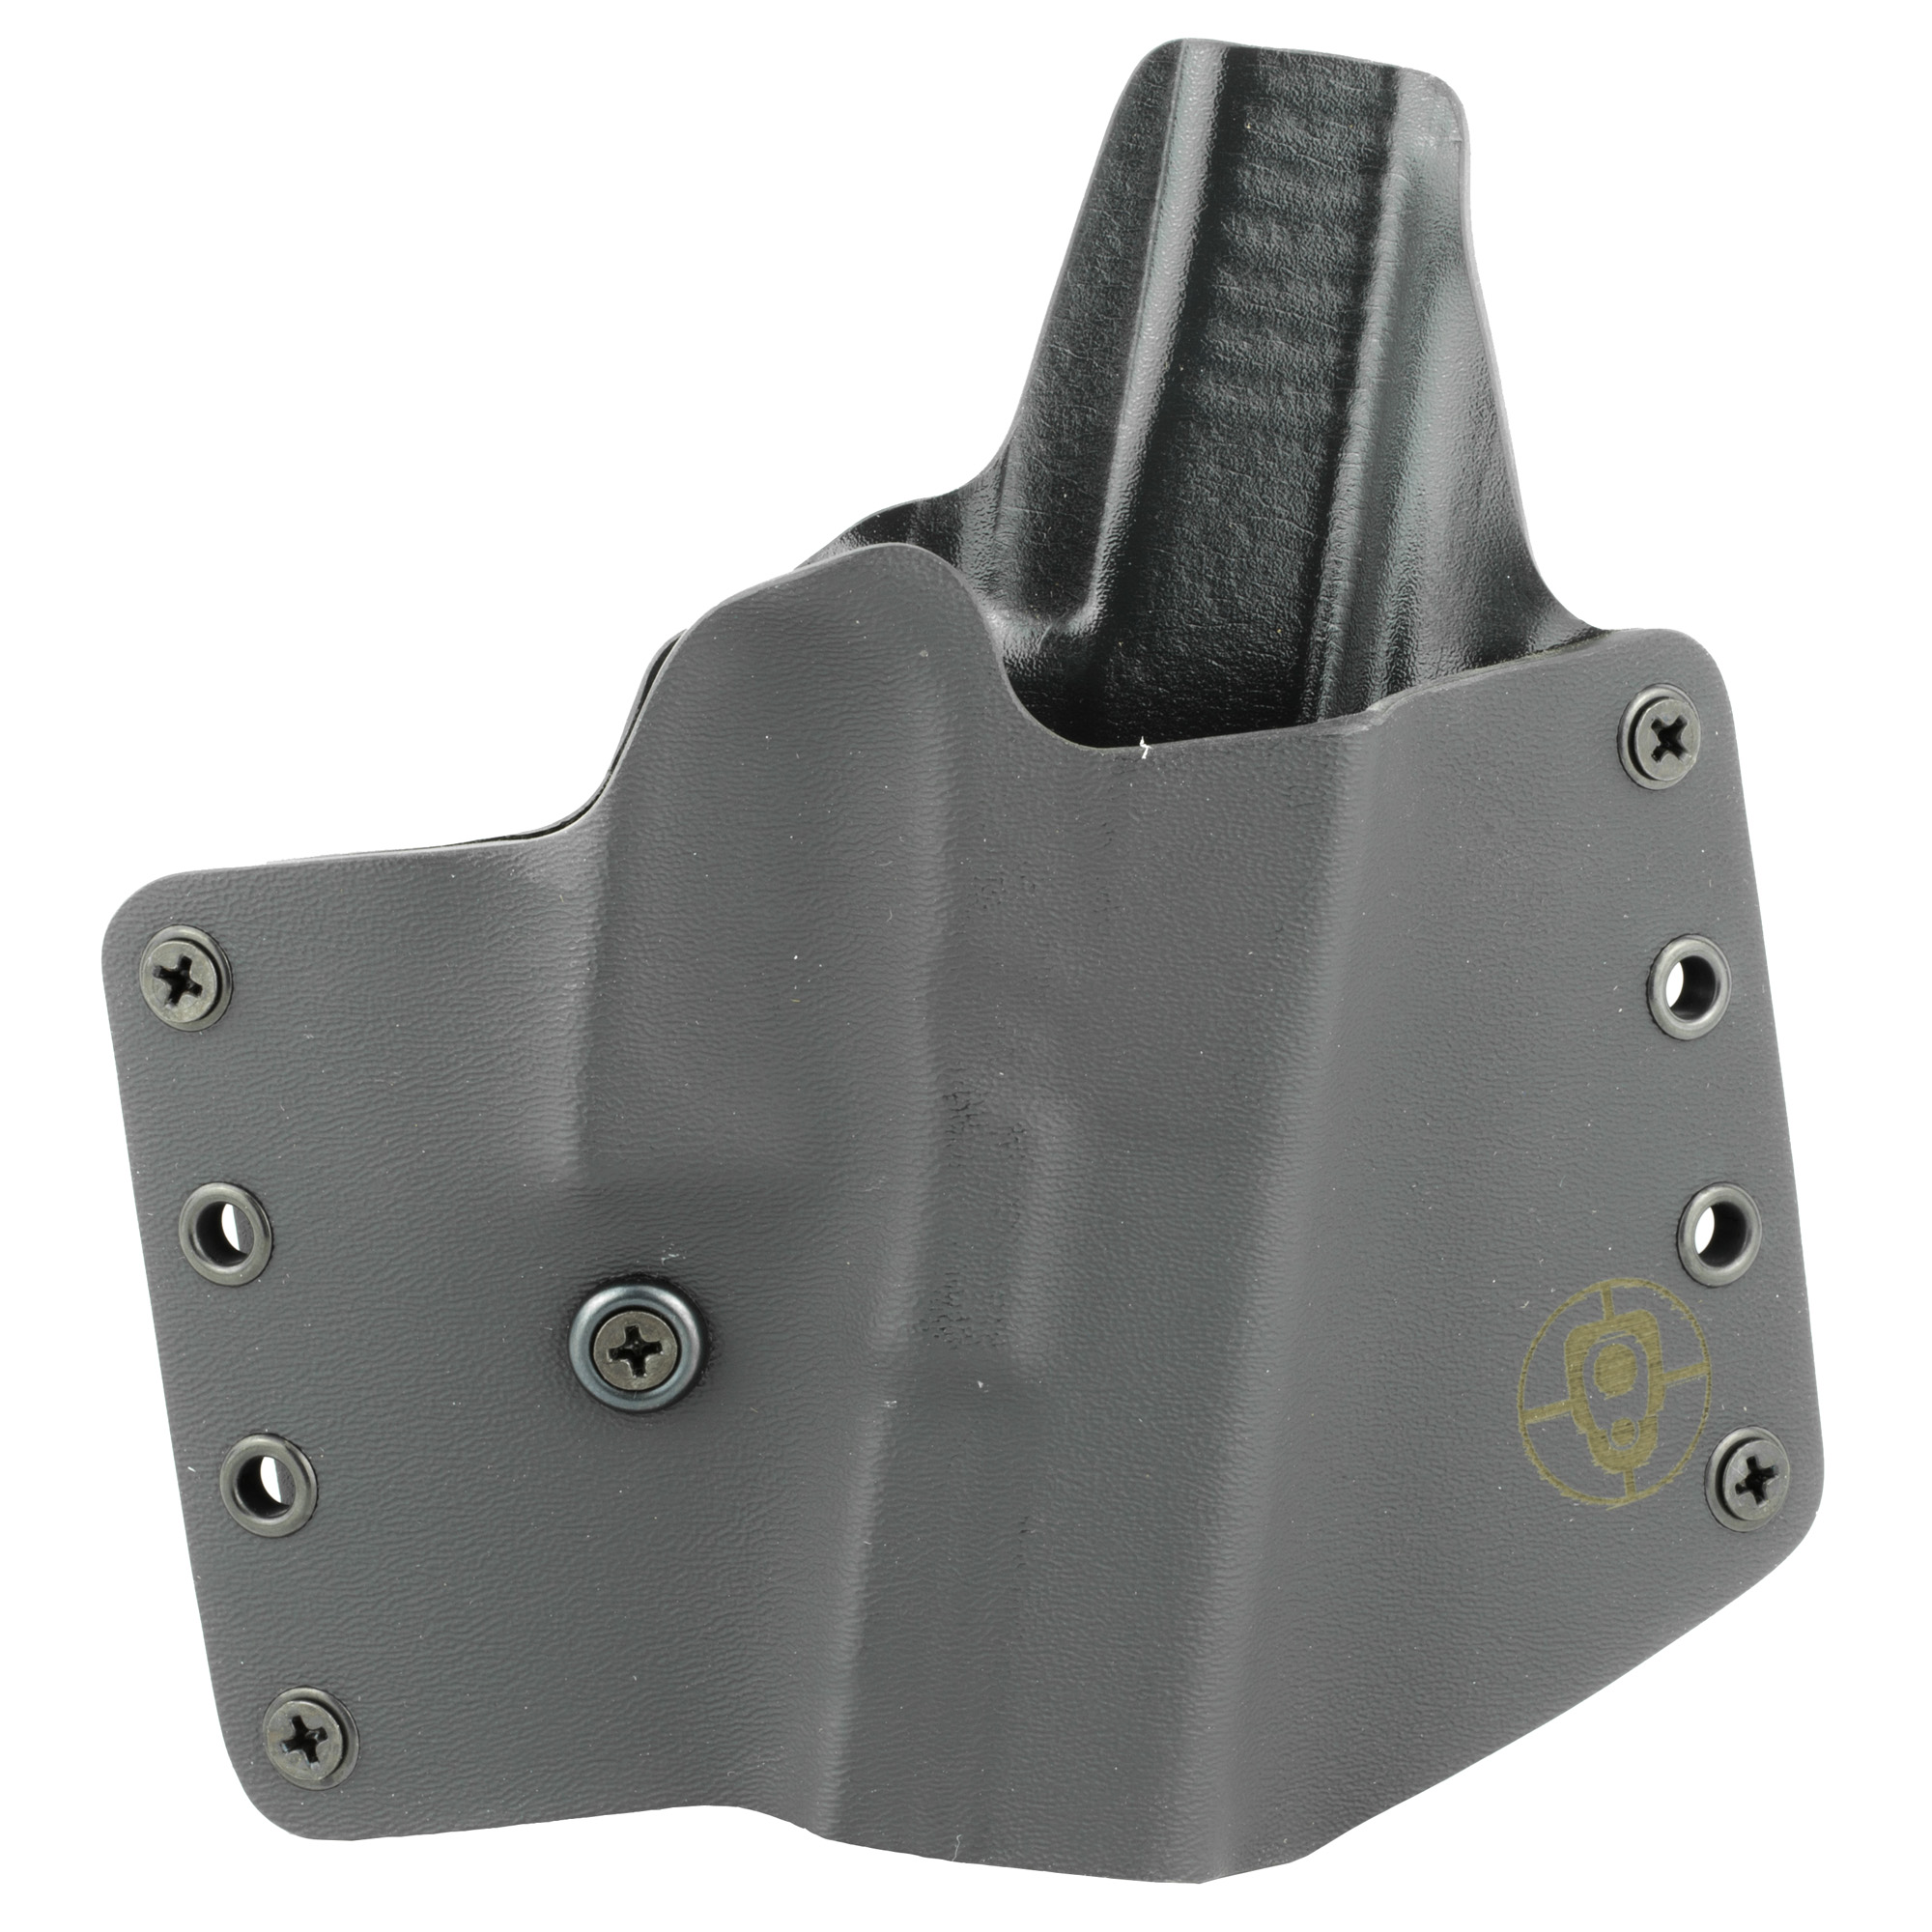 "The Standard OWB is the original holster from BlackPoint Tactical. The Standard OWB is ideal for users who desire a rugged and rigid carry platform. The Standard OWB holster is designed to have a total curve throughout the body of the holster"" allowing the holster to have a more natural fit to the curve of the body. Additionally"" the Standard OWB holster comes outfitted with a retention screw that allows the end user adjustability to the retention of the holster to their preference. The addition of metal hardware eliminates a common failure point (loops breaking) found on most OWB holsters. The Standard OWB is great for OWB concealment due to the side mounted belt attachment points. This reduces the overall thickness of the platform and allows the gun to ride as close to the body as possible."